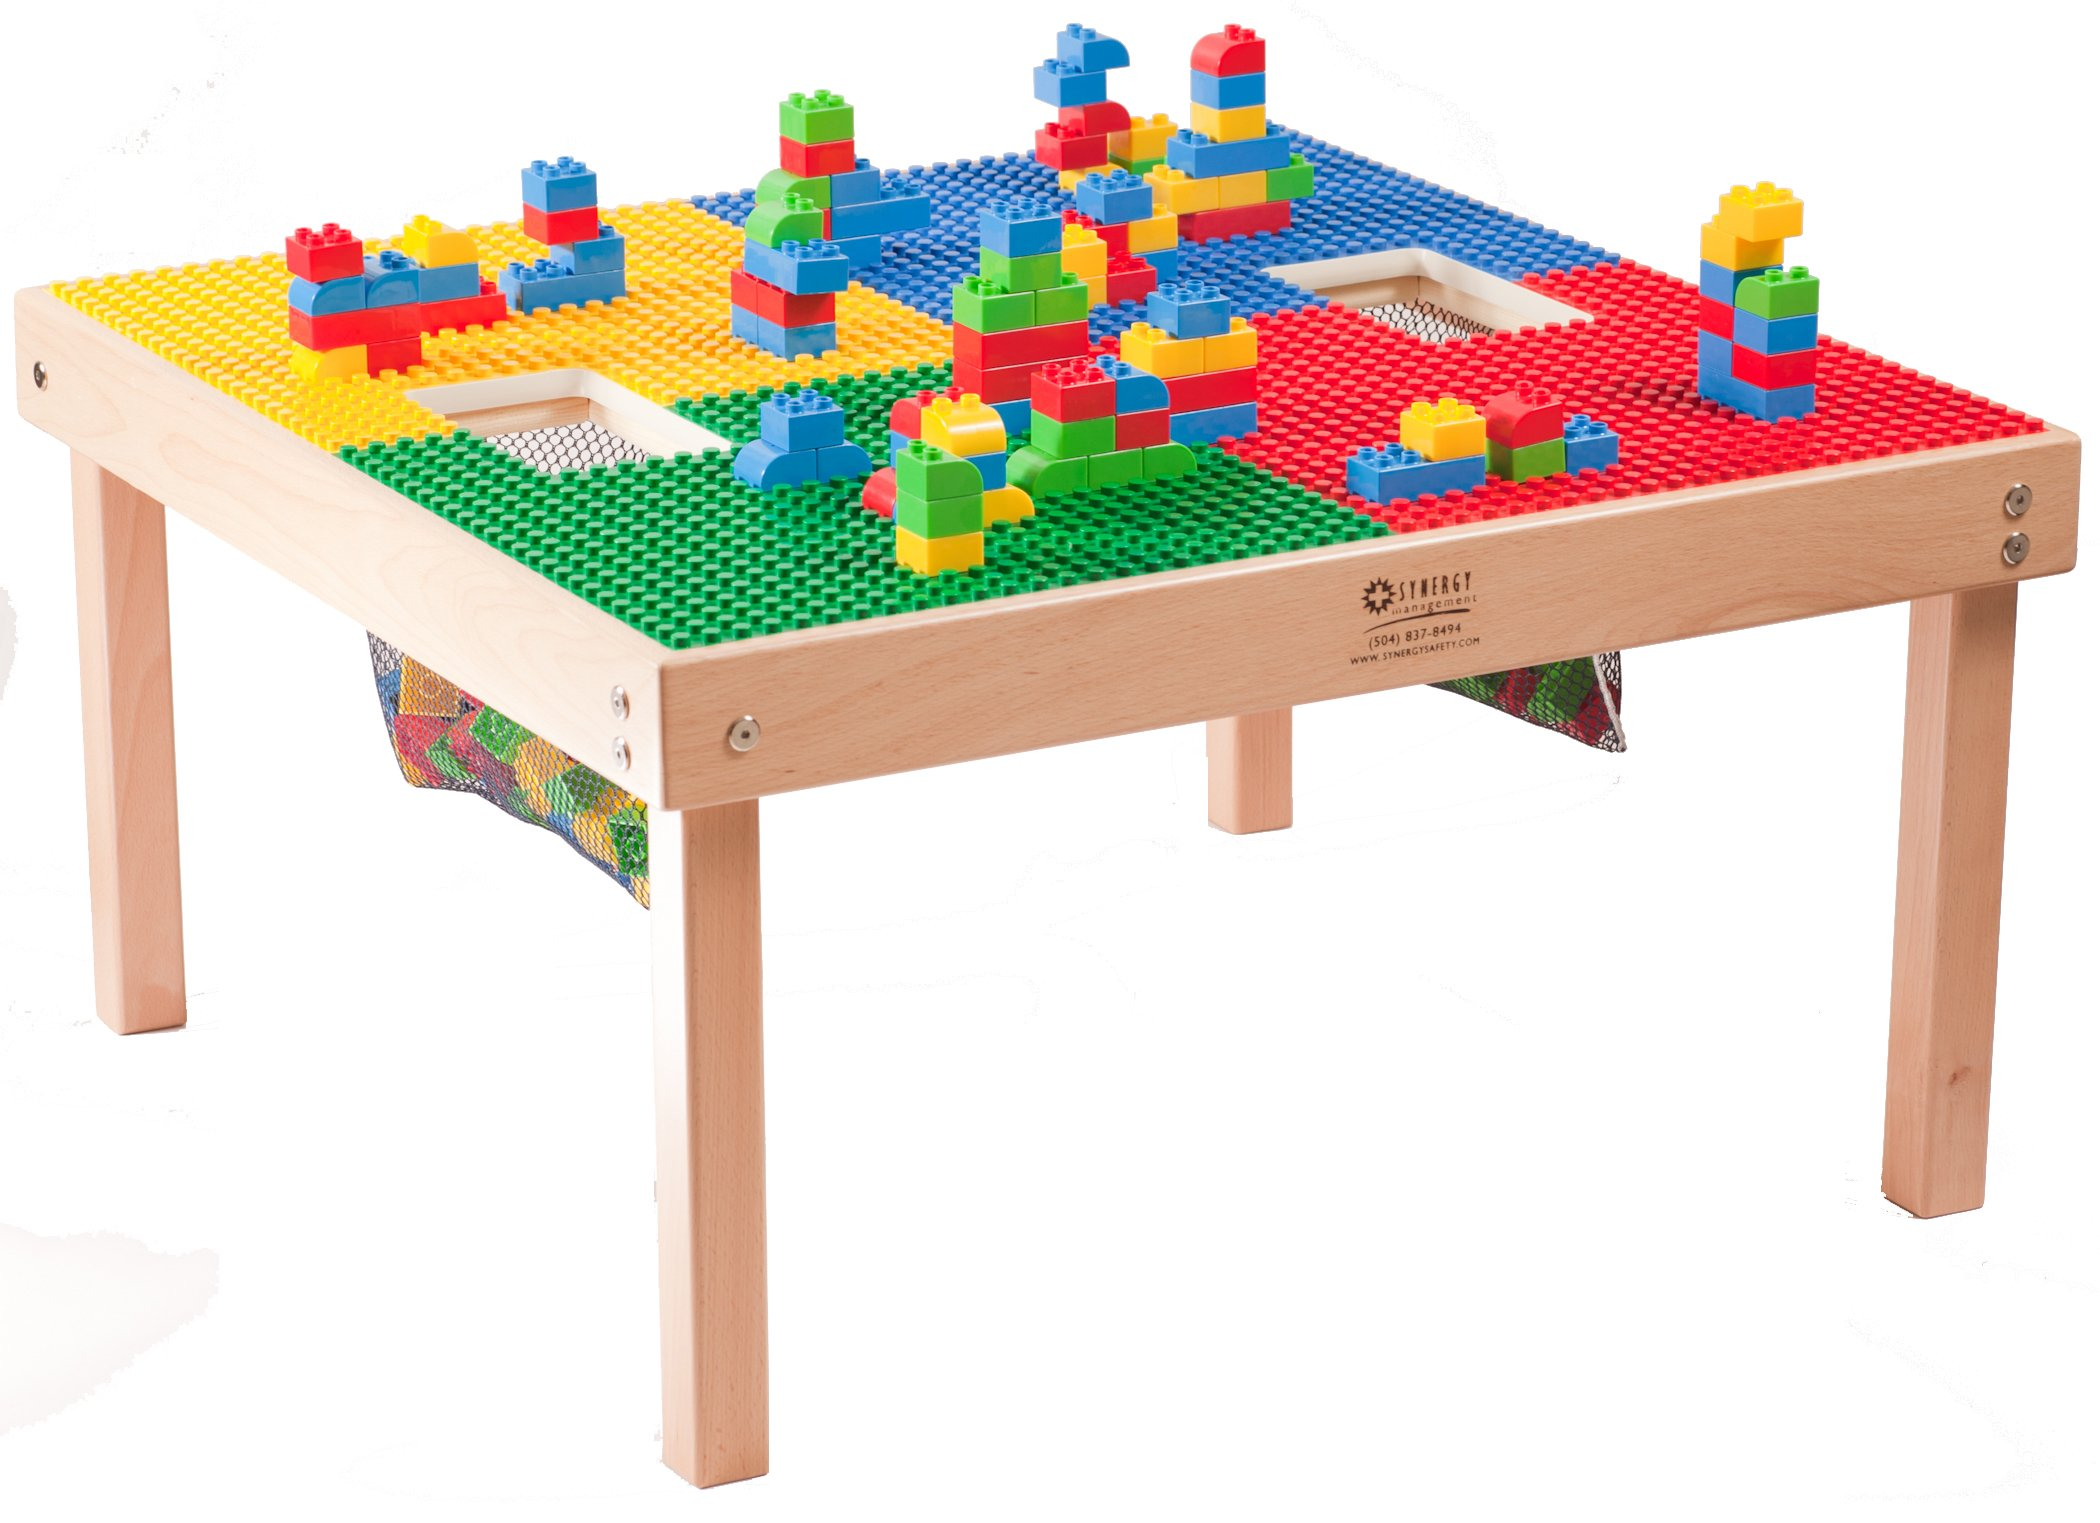 HEAVY DUTY LARGE DUPLO TABLE with 2 Built-In Lego Storage(patent)-32'' x 32''-''MADE IN THE USA!''-''PREASSEMBLED''- Premium Series- Solid WOOD Legs & Frames-AGES 1 TO 5